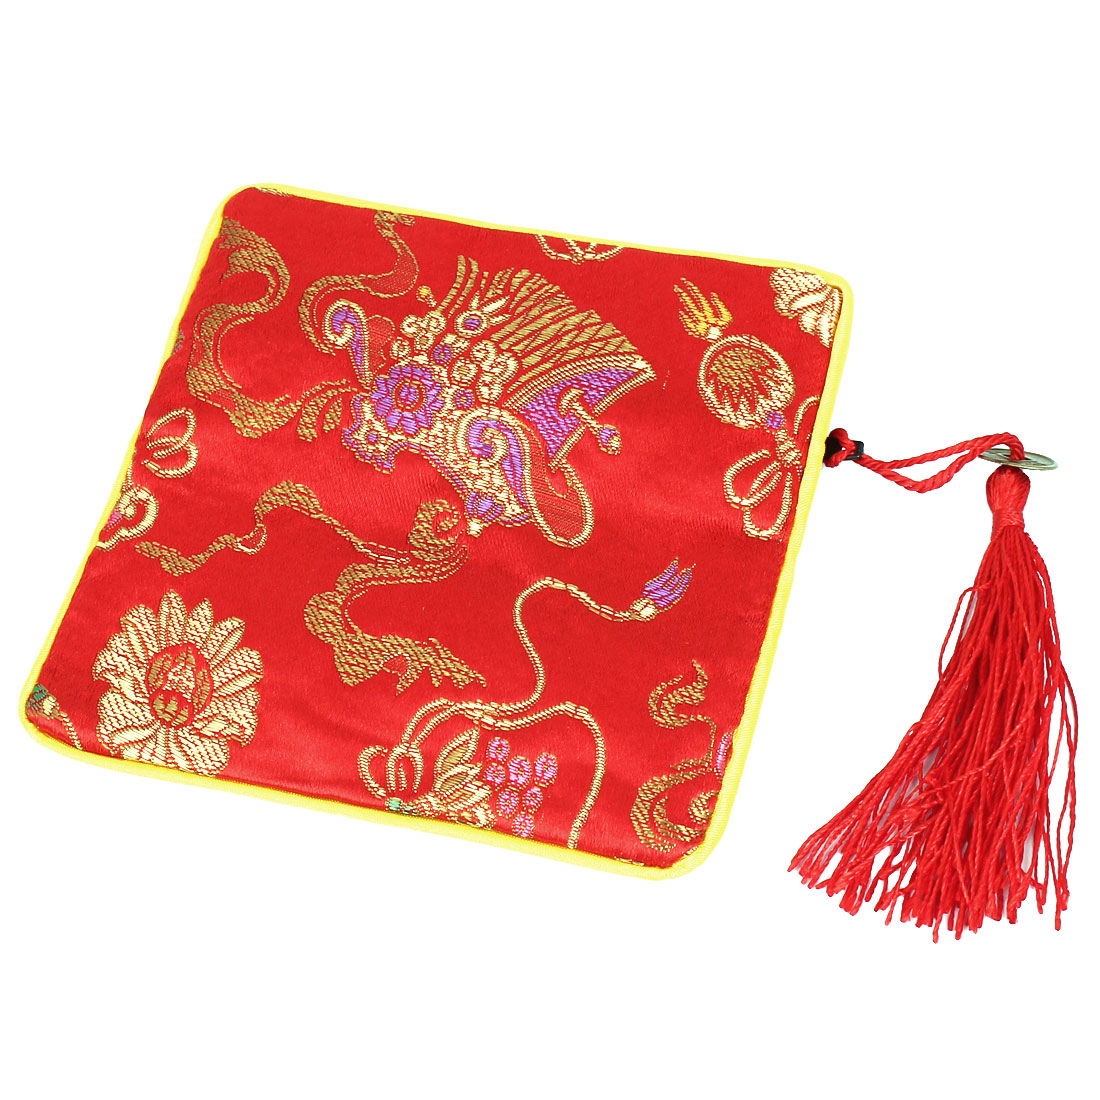 Tassel Pendant Zipper Closure Cosmetic Jewelry Gift Coin Bag Purse Pouch Red